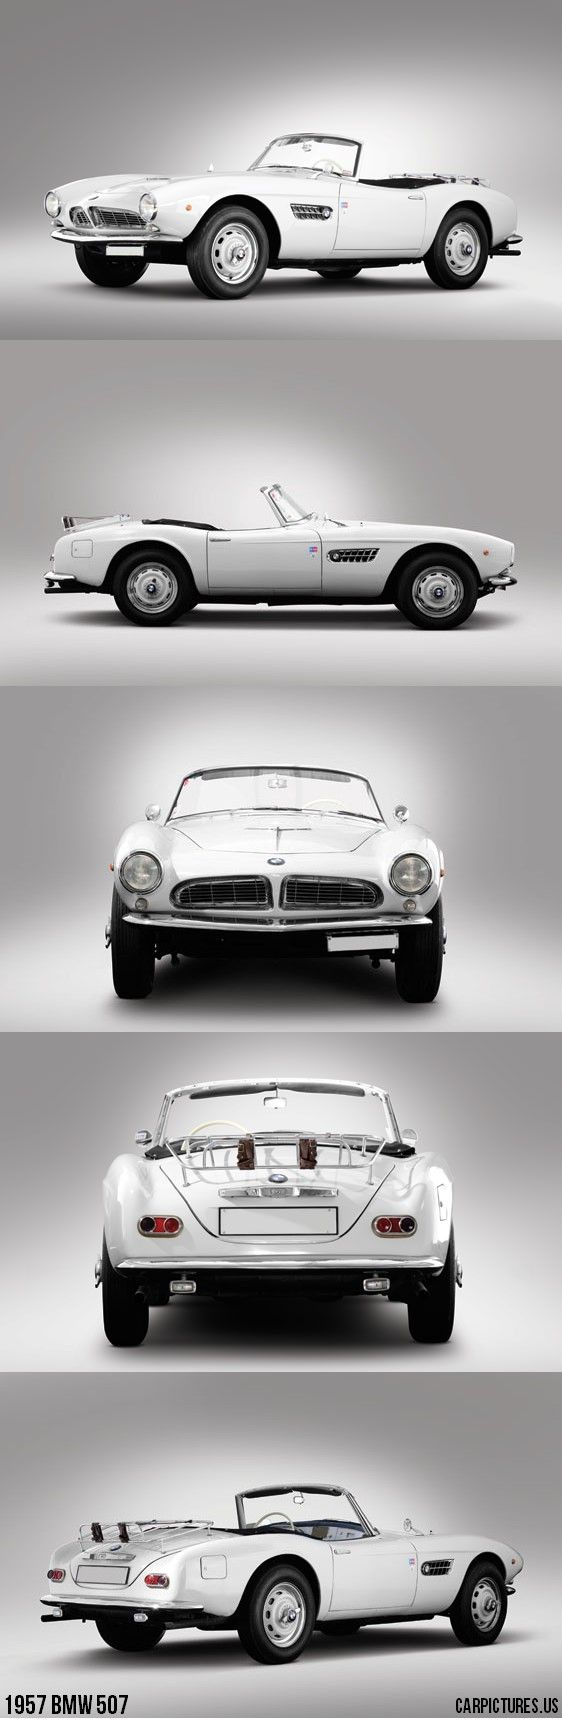 1957 BMW 507 #bmw #cars #tyres                                                                                                                                                                                 More